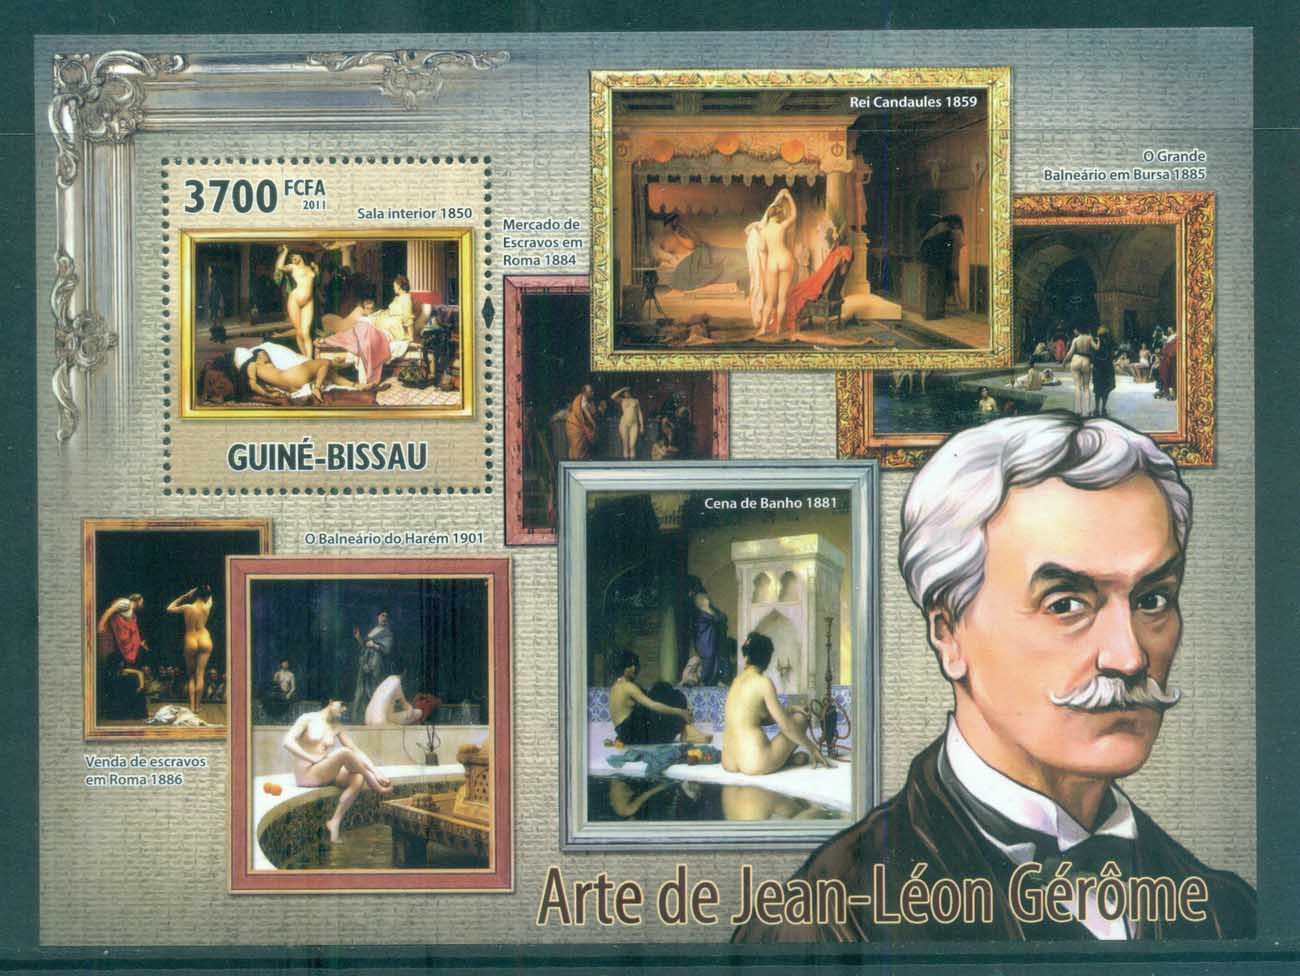 Guinea Bissau 2011 Art, Painting, Jean-Leon Gerome MS MUH GB11222b